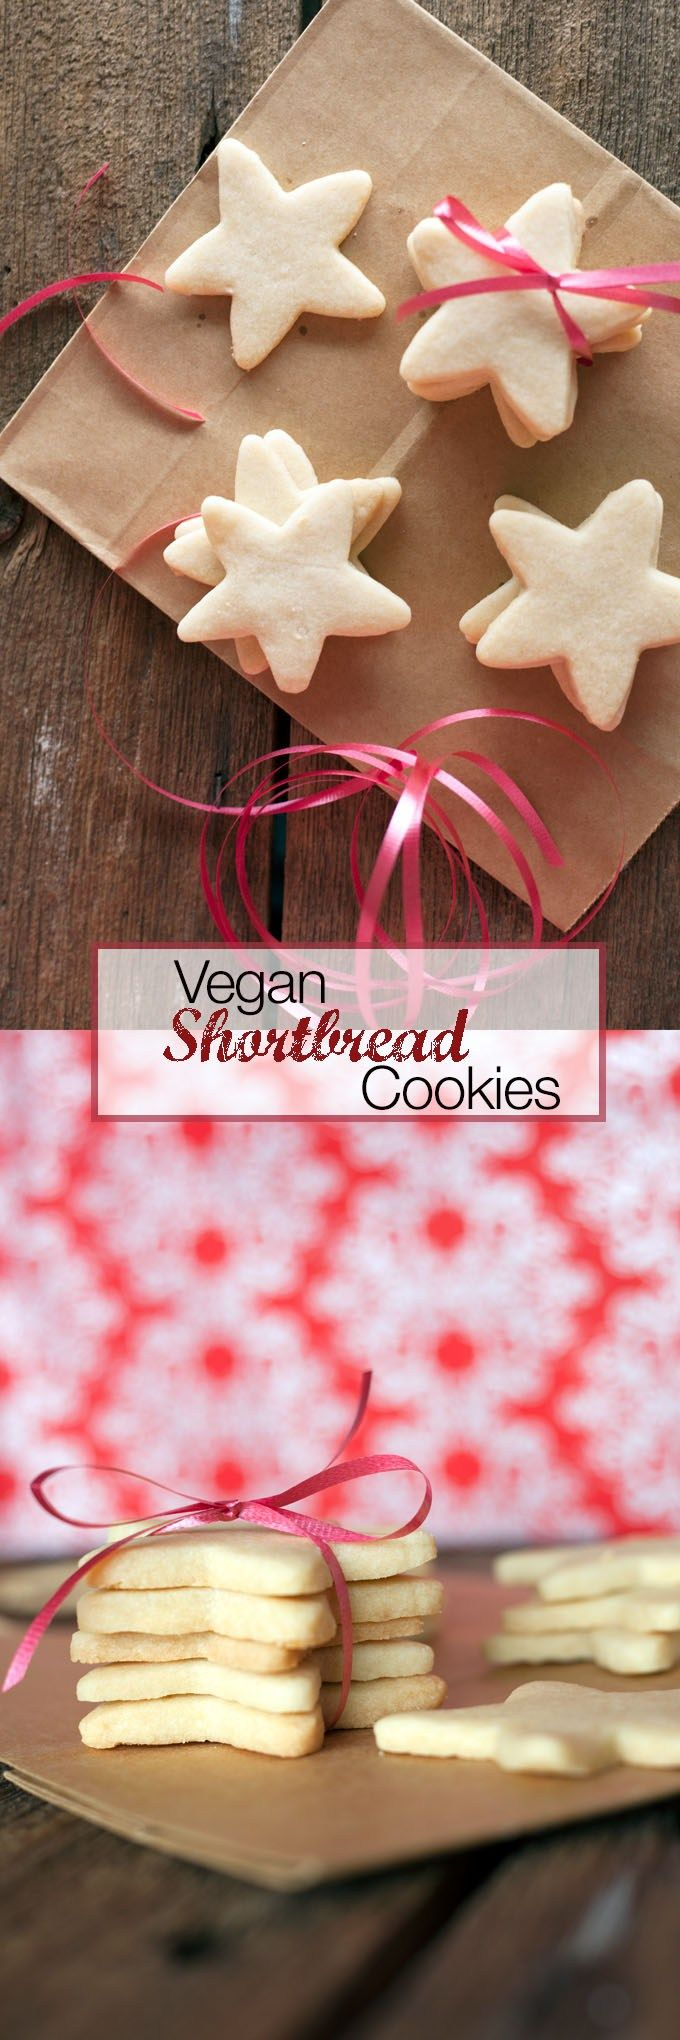 These 4 ingredient Vegan Shortbread cookies are quick, easy and just as good as the regular version!!!